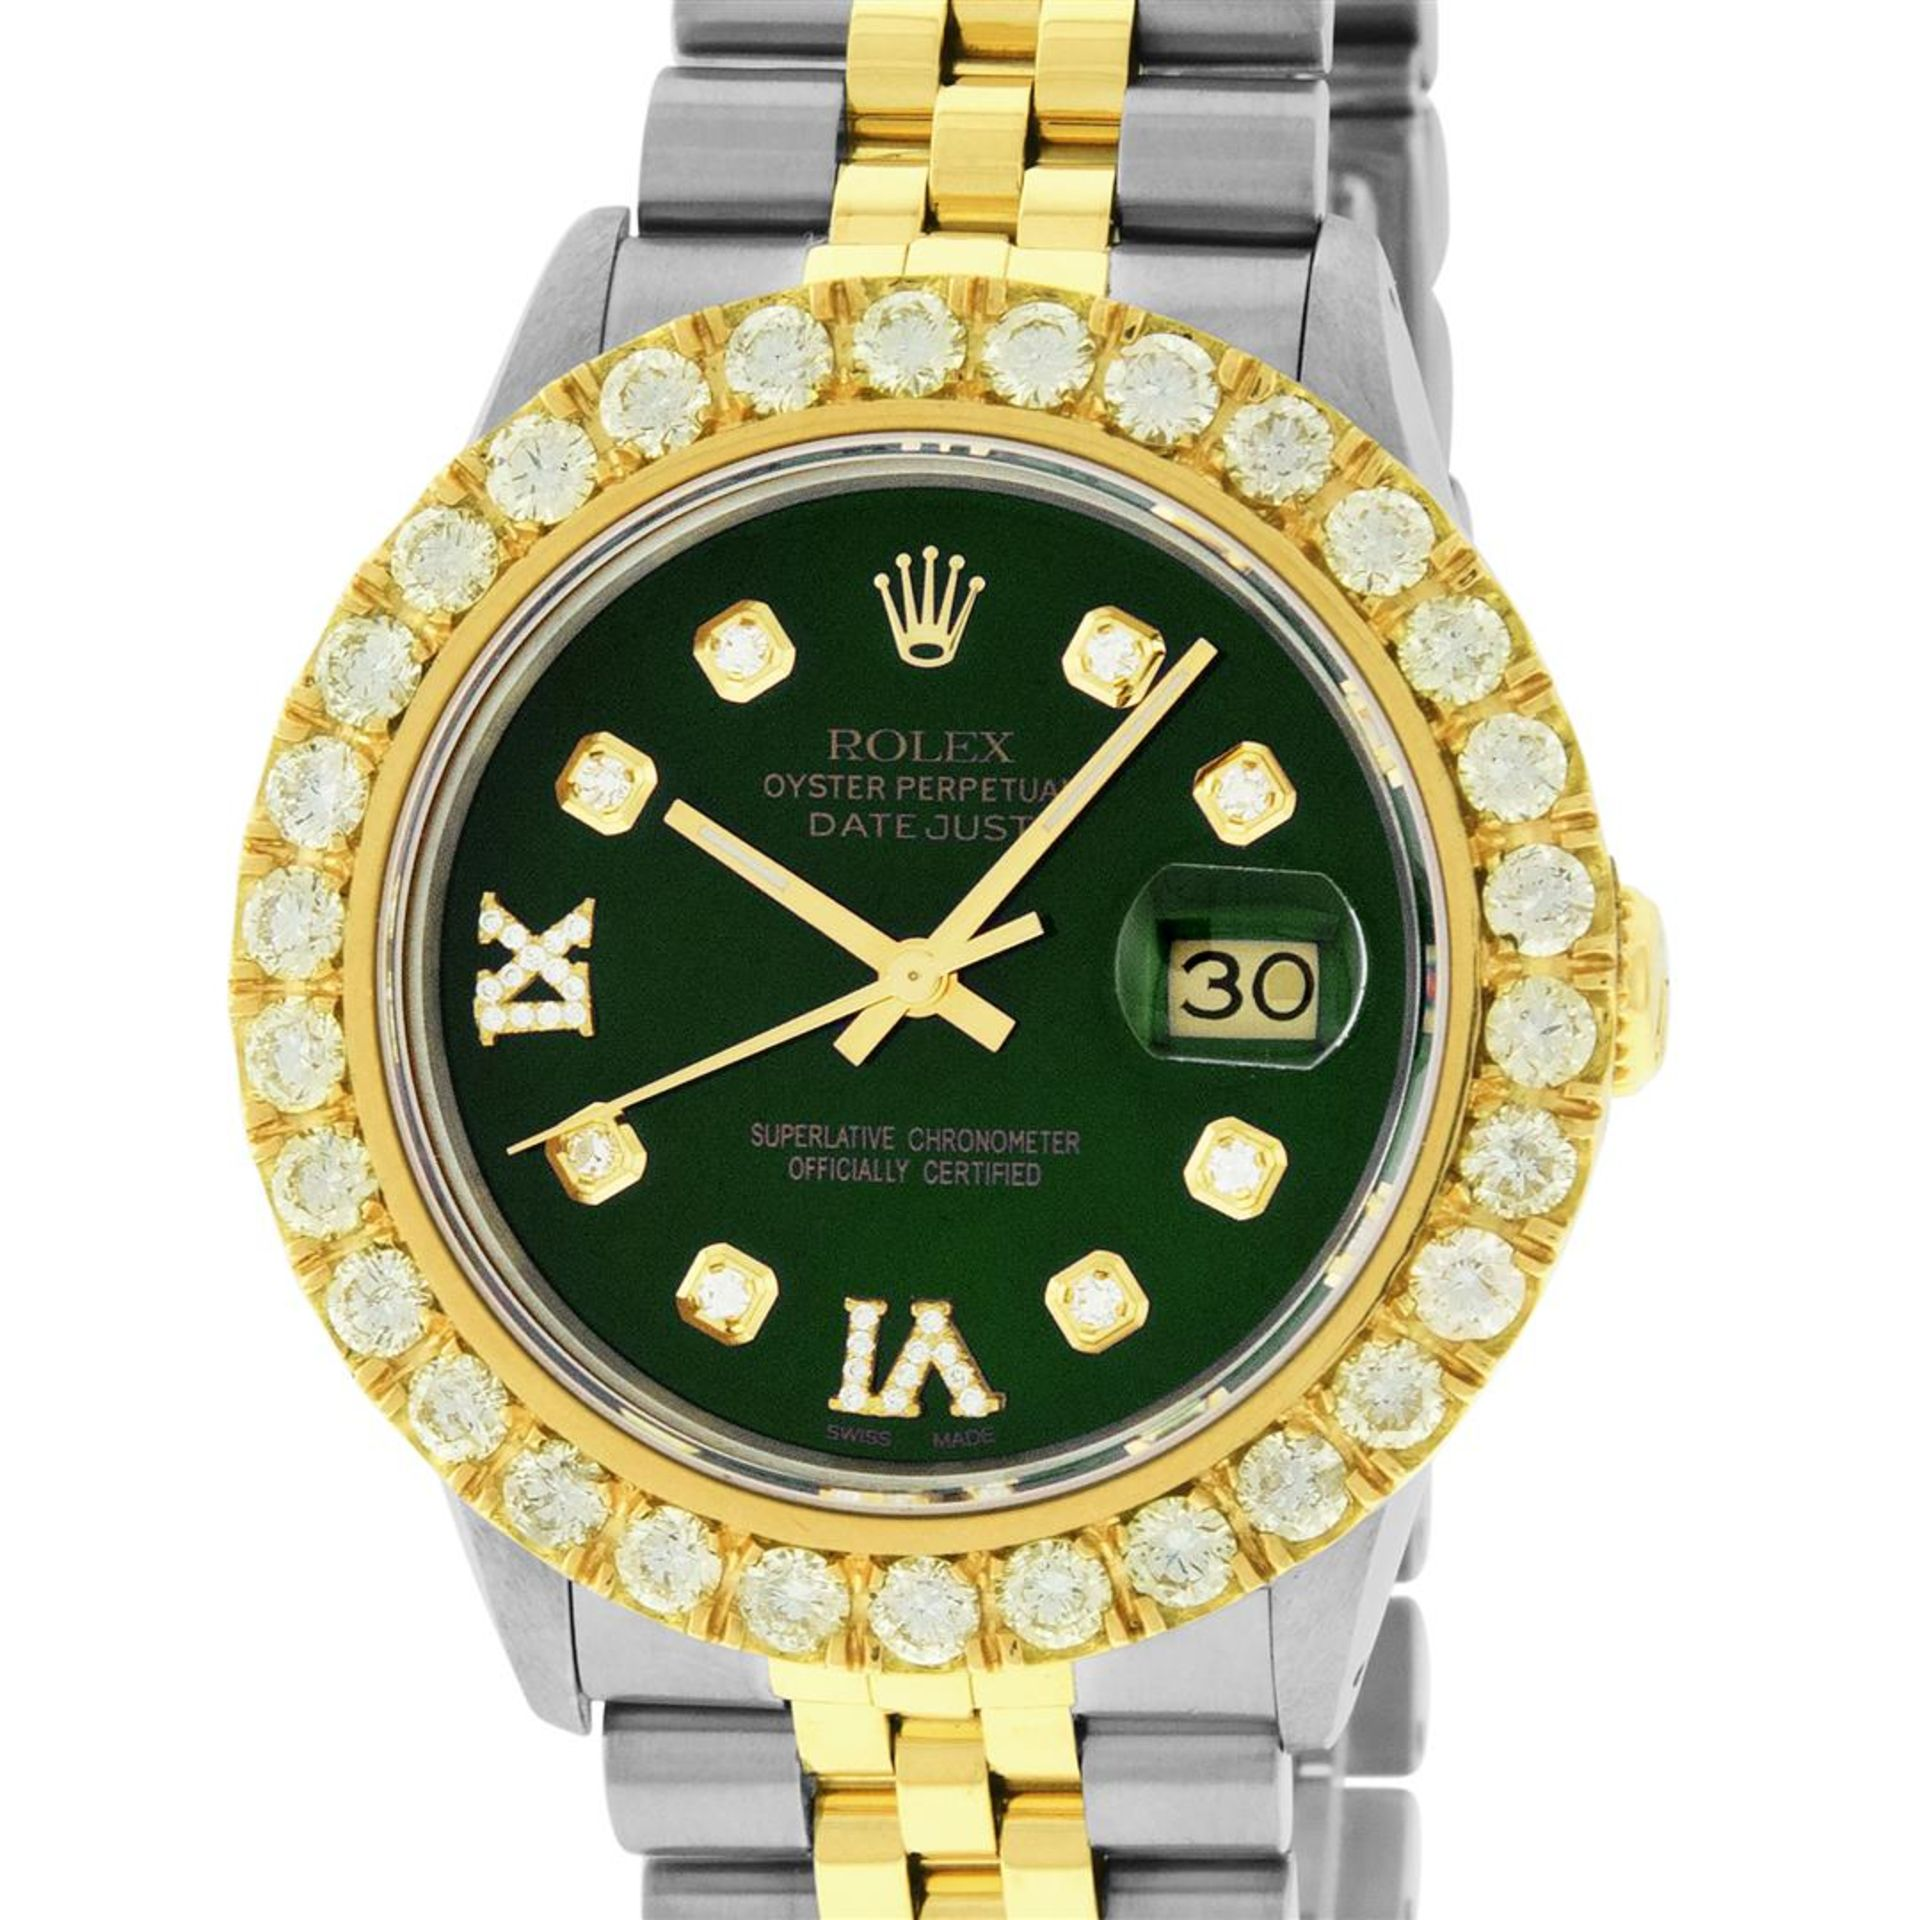 Rolex Mens 2 Tone Green VS 4 ctw Beadset Diamond Datejust Wristwatch with Rolex